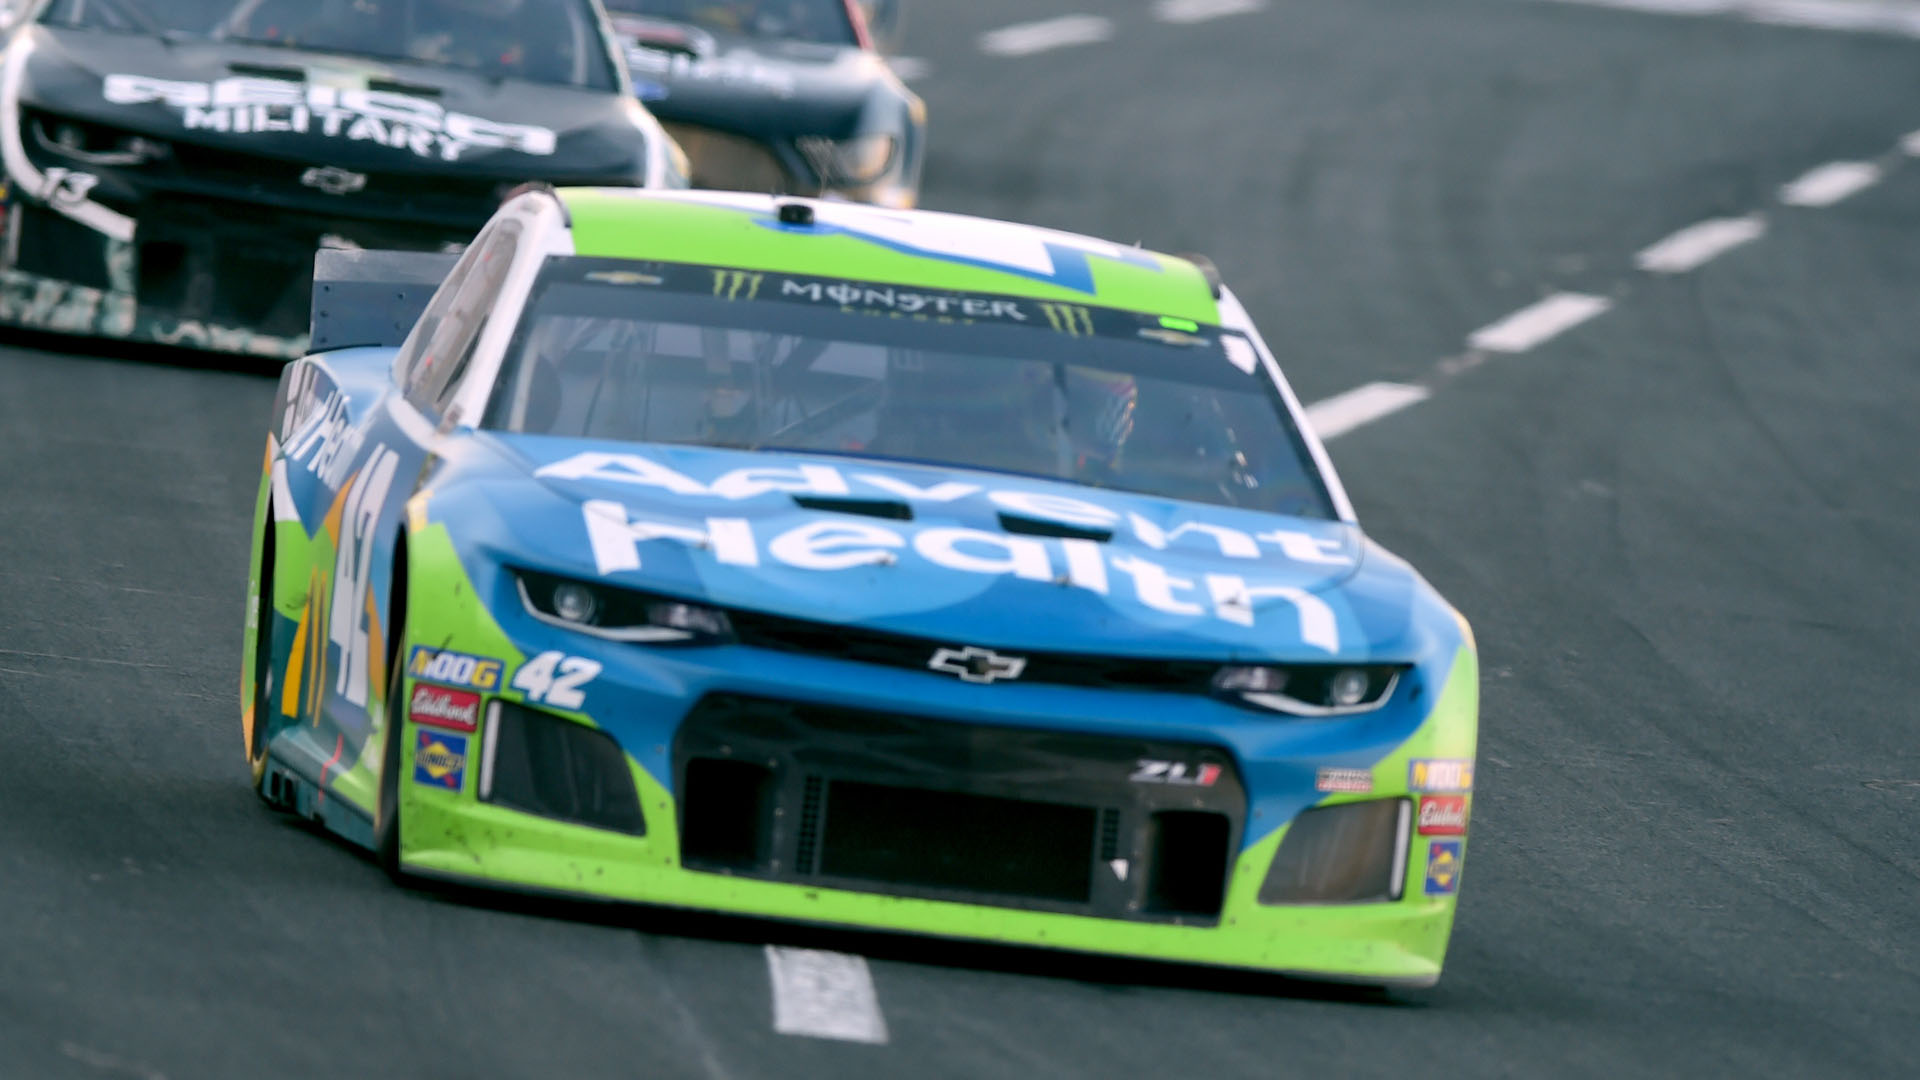 NASCAR All-Star Race results: Kyle Larson wins $1 million after qualifying in Open